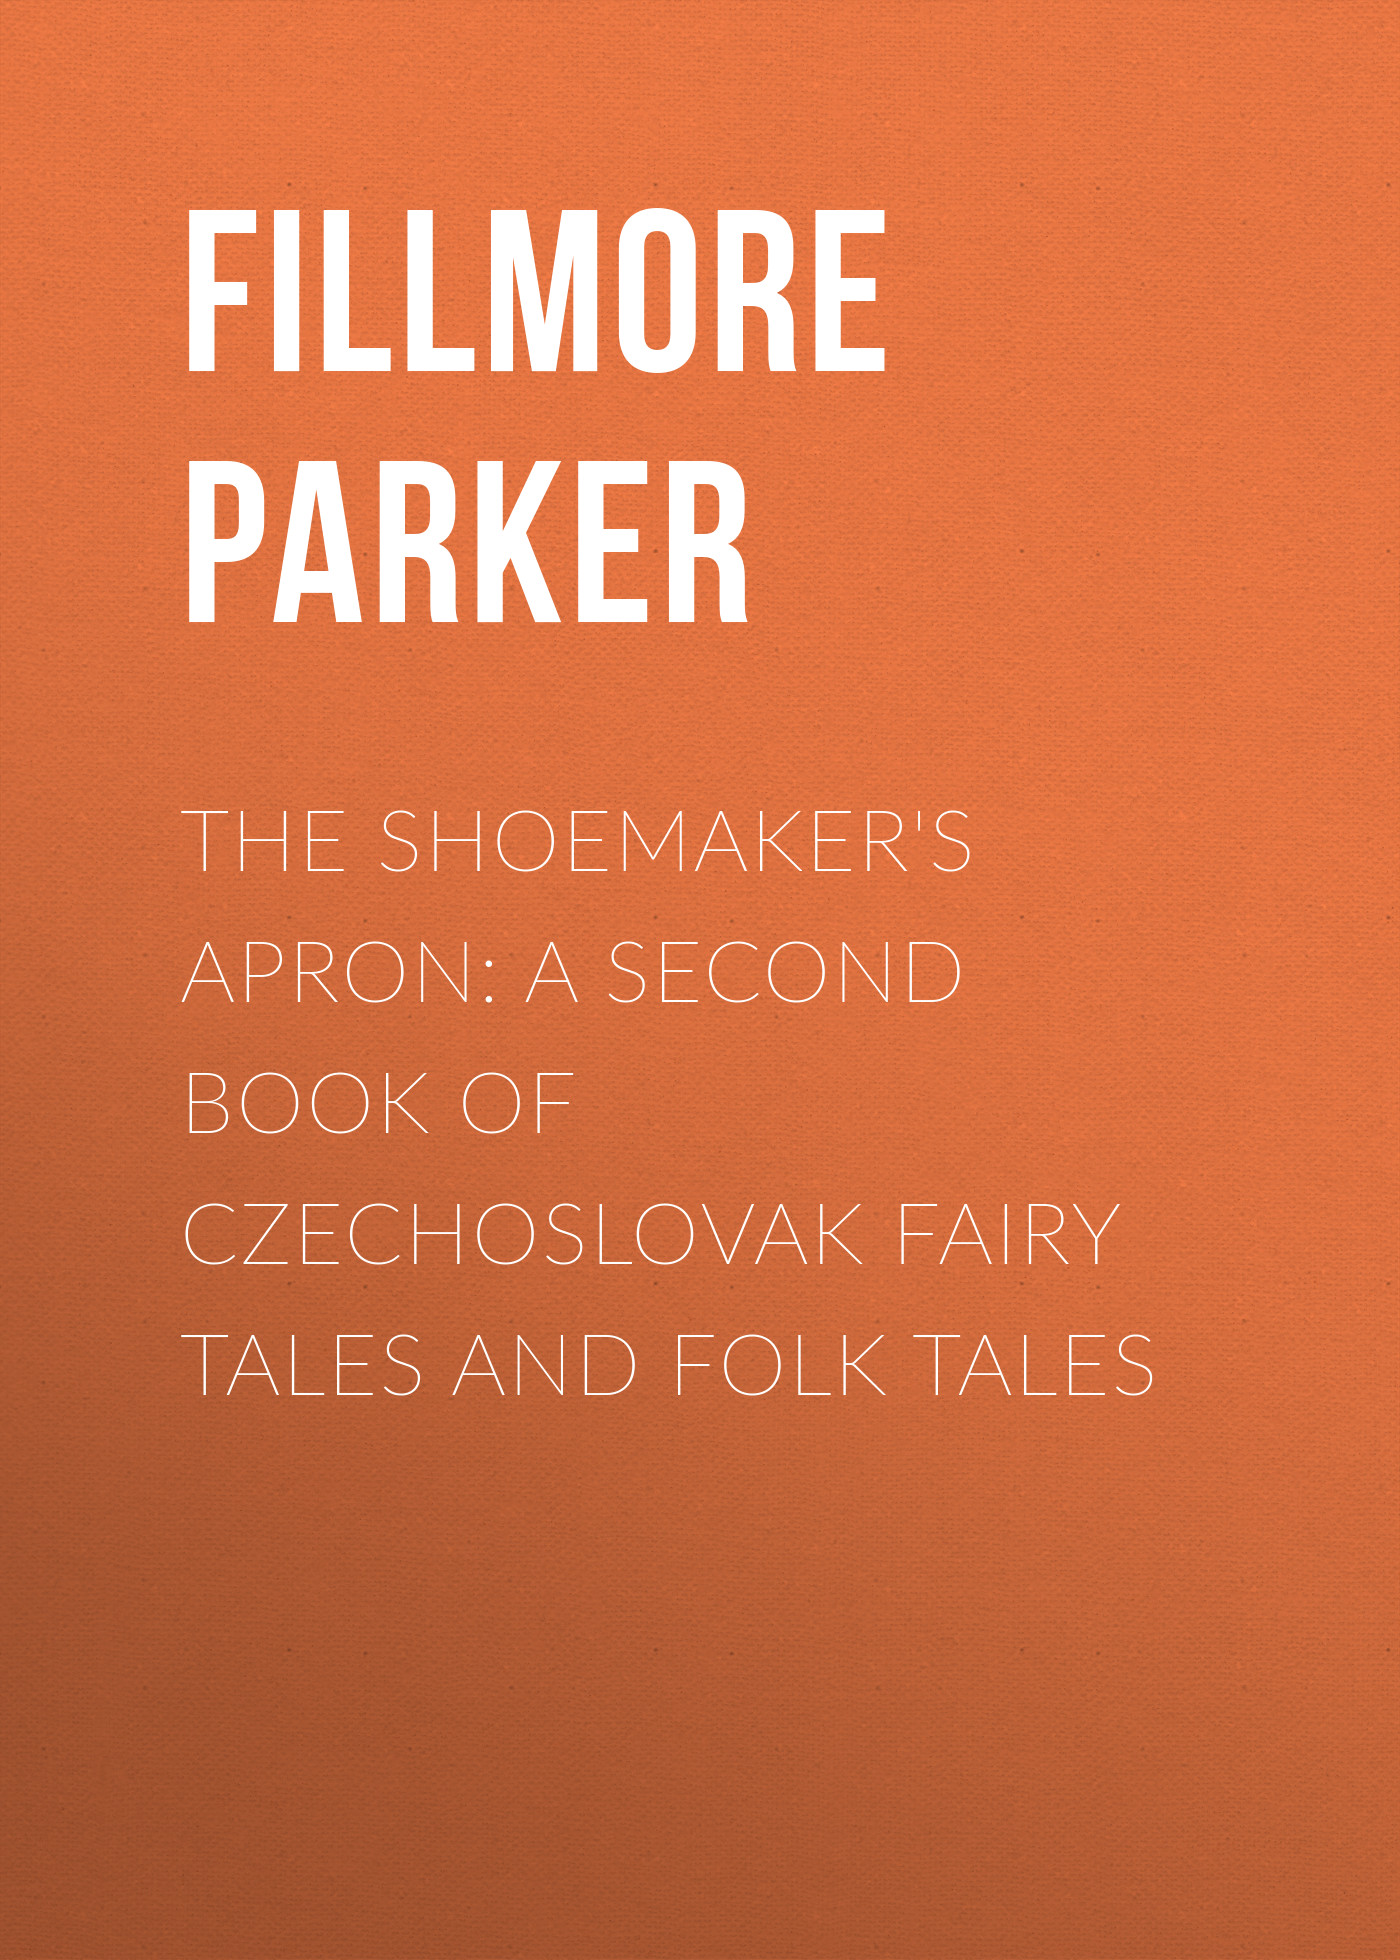 Фото - Fillmore Parker The Shoemaker's Apron: A Second Book of Czechoslovak Fairy Tales and Folk Tales ручки parker s1859483